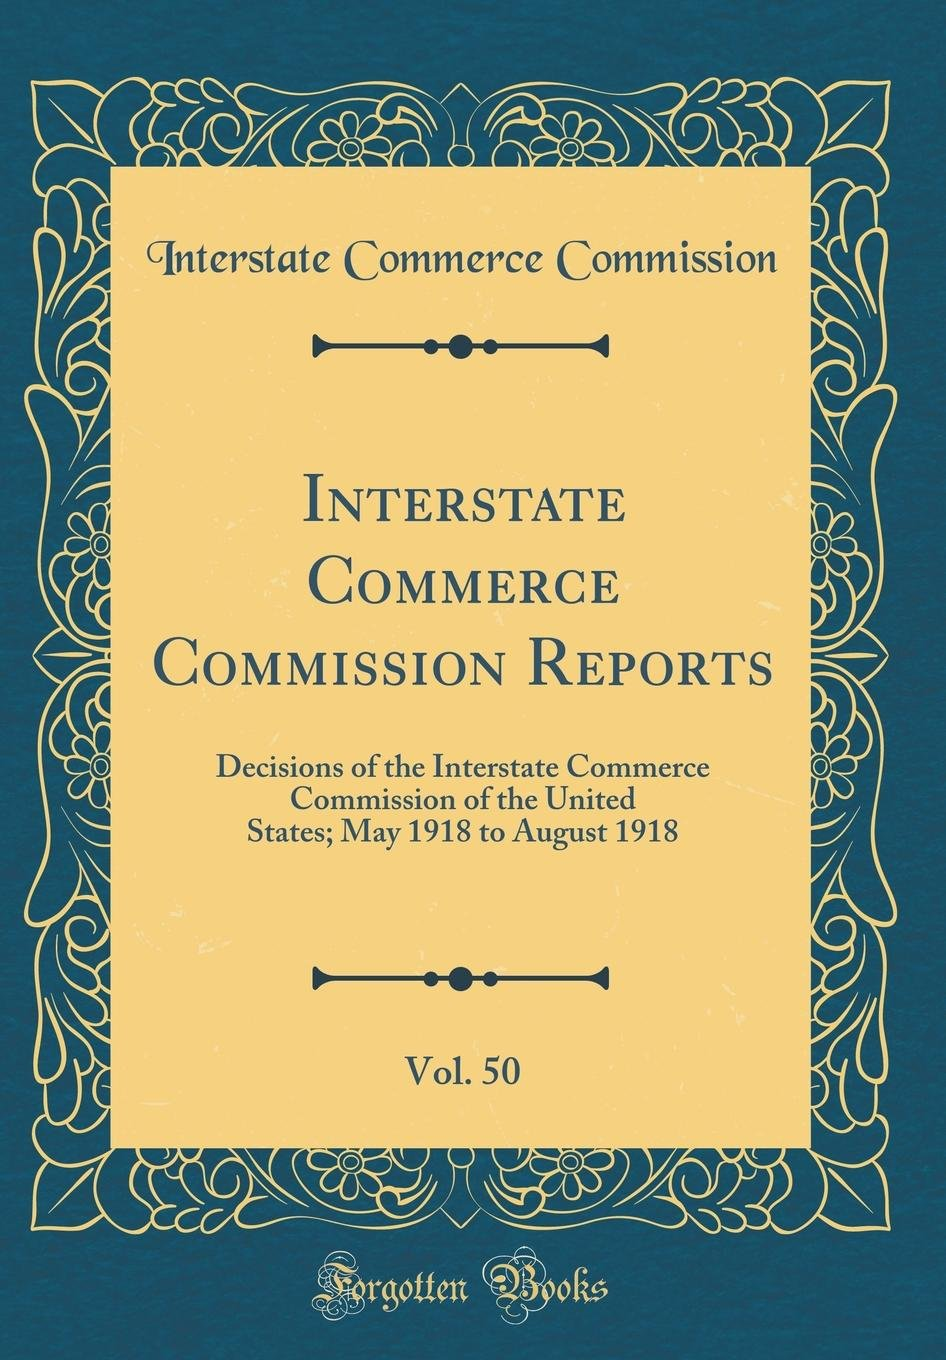 Interstate Commerce Commission Reports, Vol. 50: Decisions of the Interstate Commerce Commission of the United States; May 1918 to August 1918 (Classic Reprint) pdf